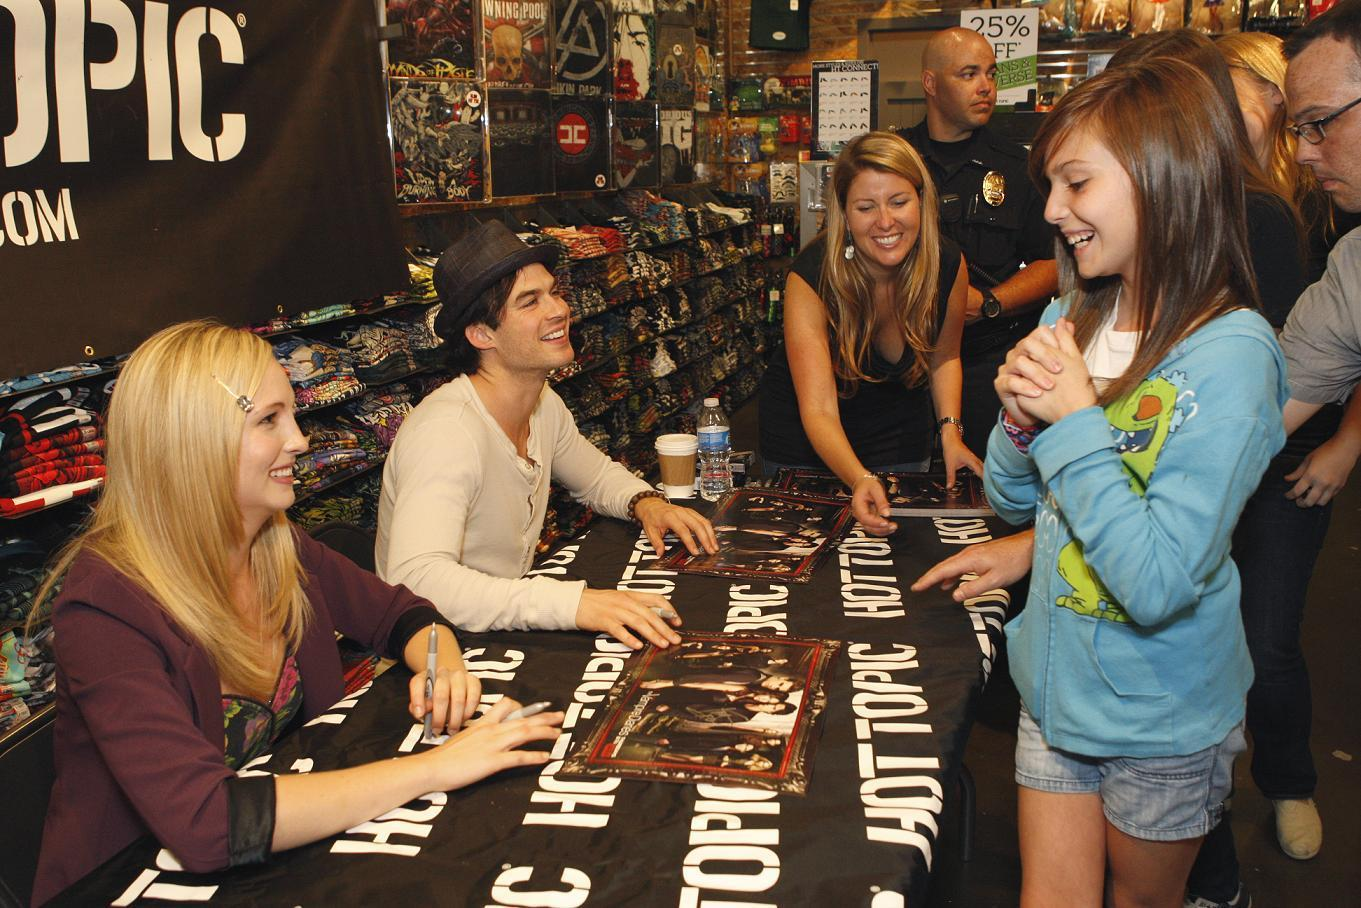 http://images4.fanpop.com/image/photos/16200000/Hot-Topic-Tour-in-Texas-the-vampire-diaries-16246876-1361-908.jpg